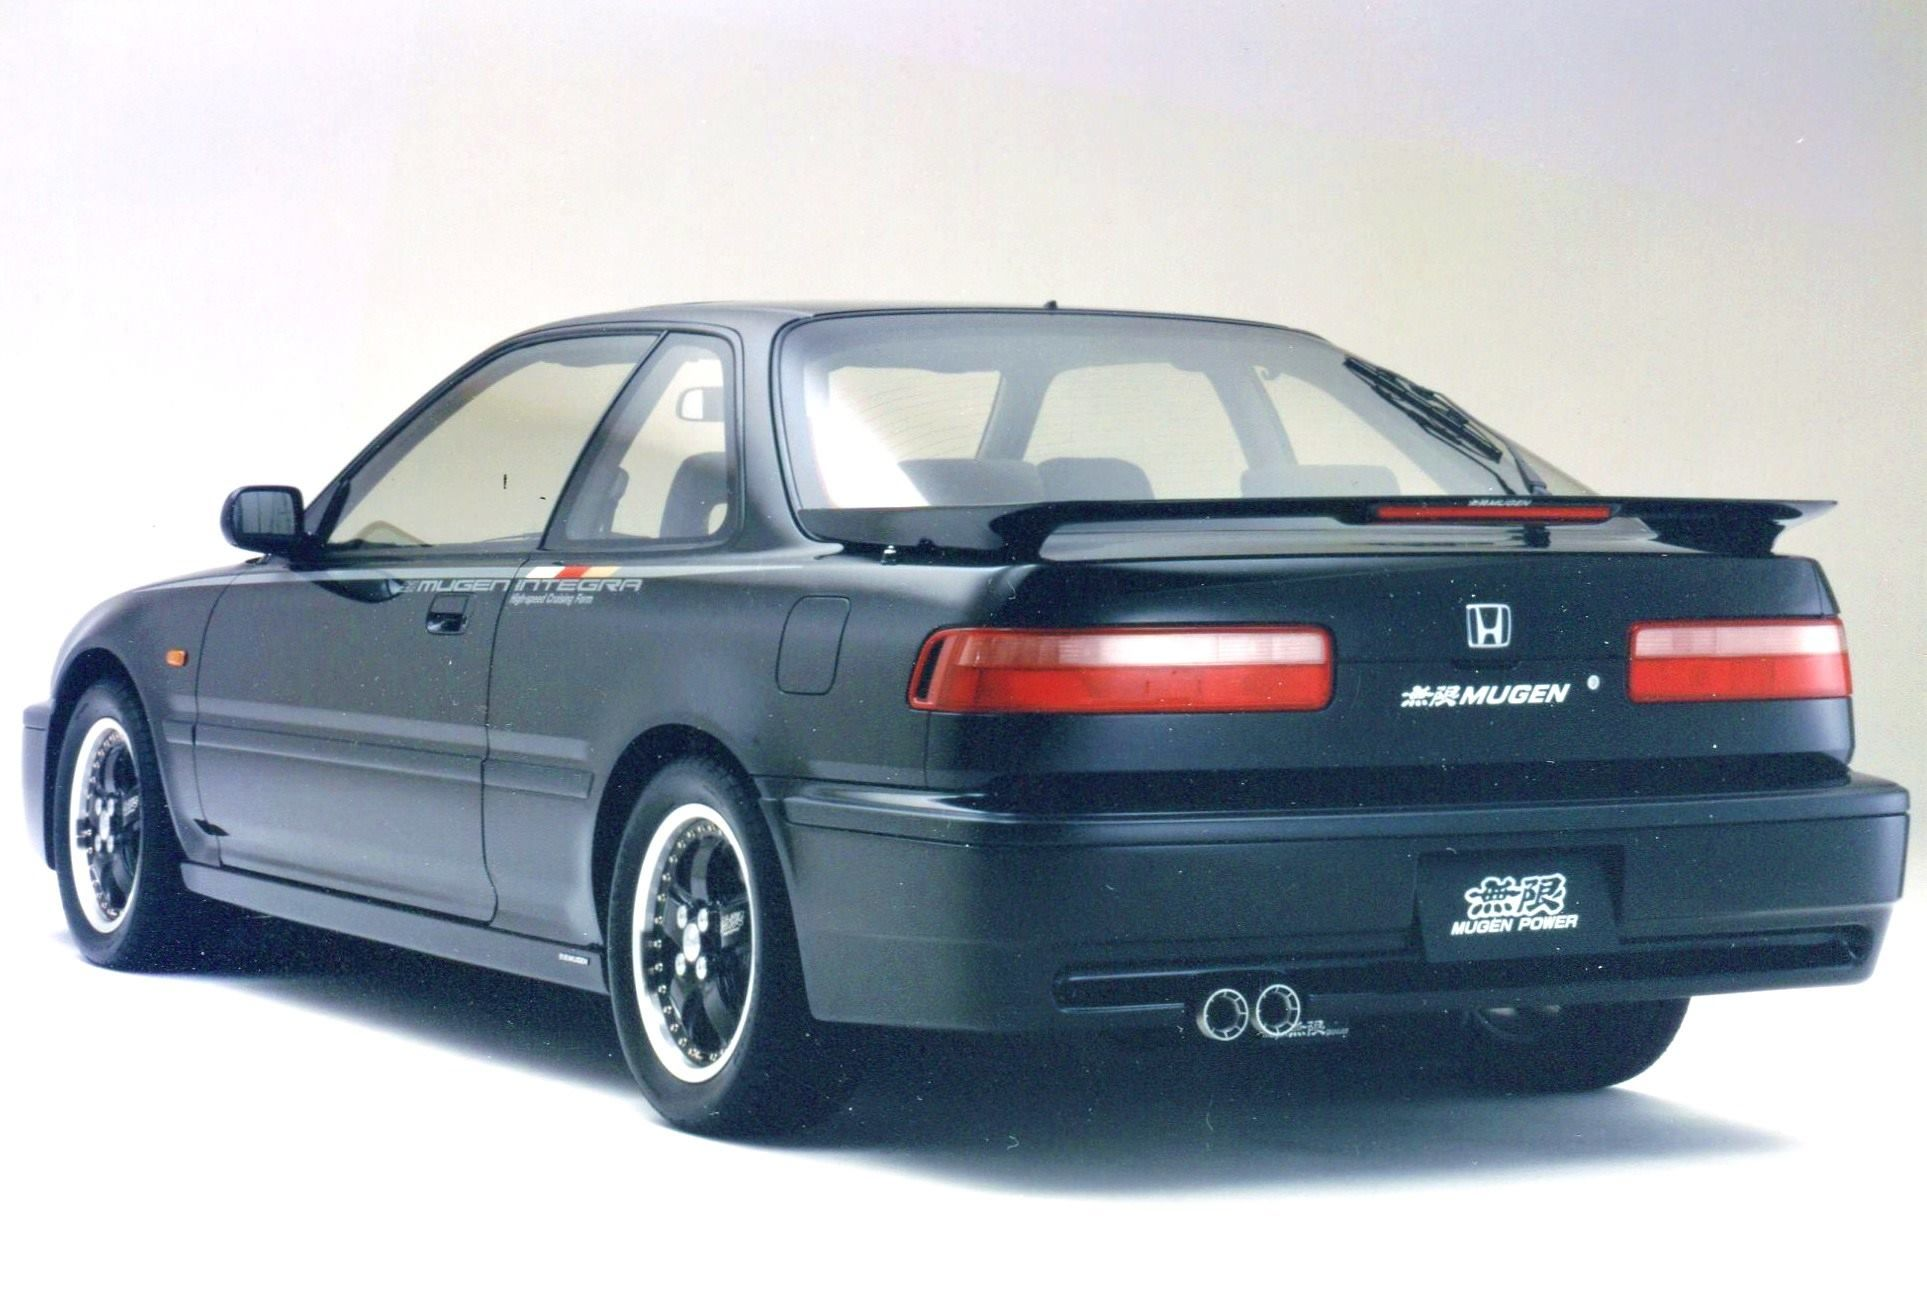 Complete 1995 Acura Integra Service Repair Manual In 2021 Repair Manuals Acura Integra Repair